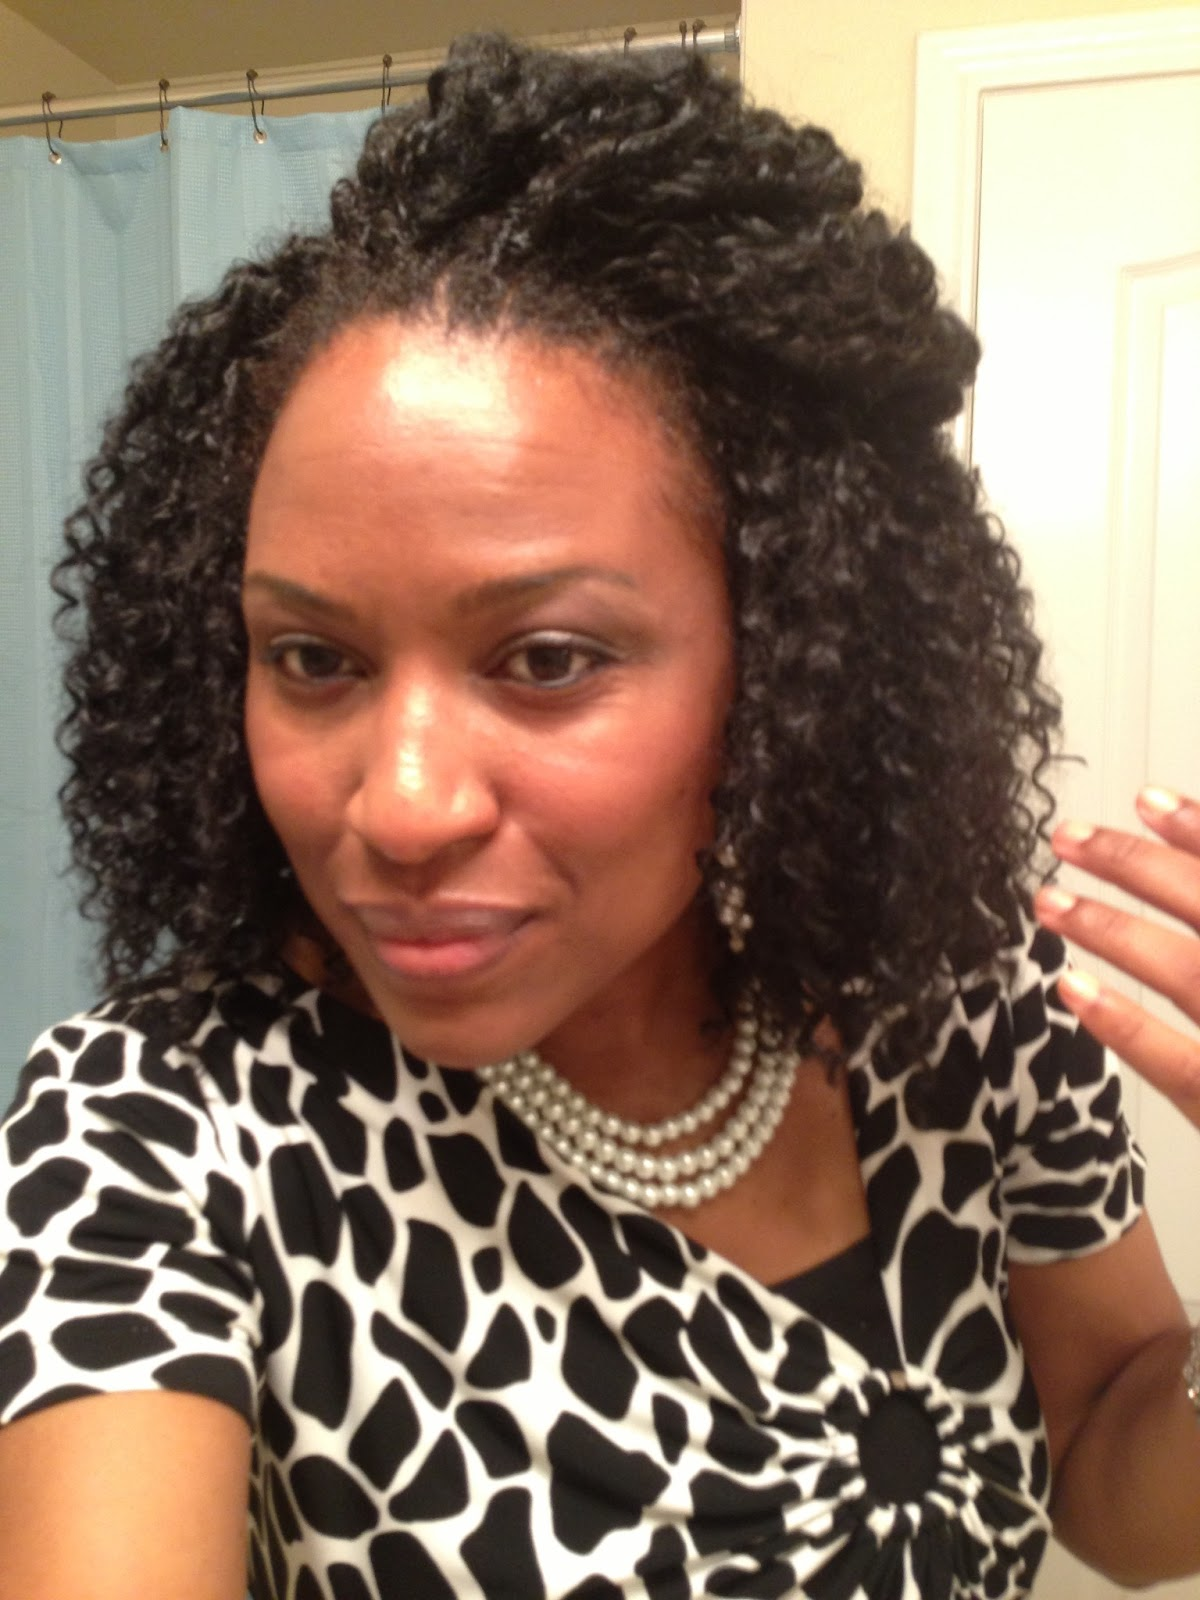 Crochet Braids Straight Hair Ive had my crochet braids in